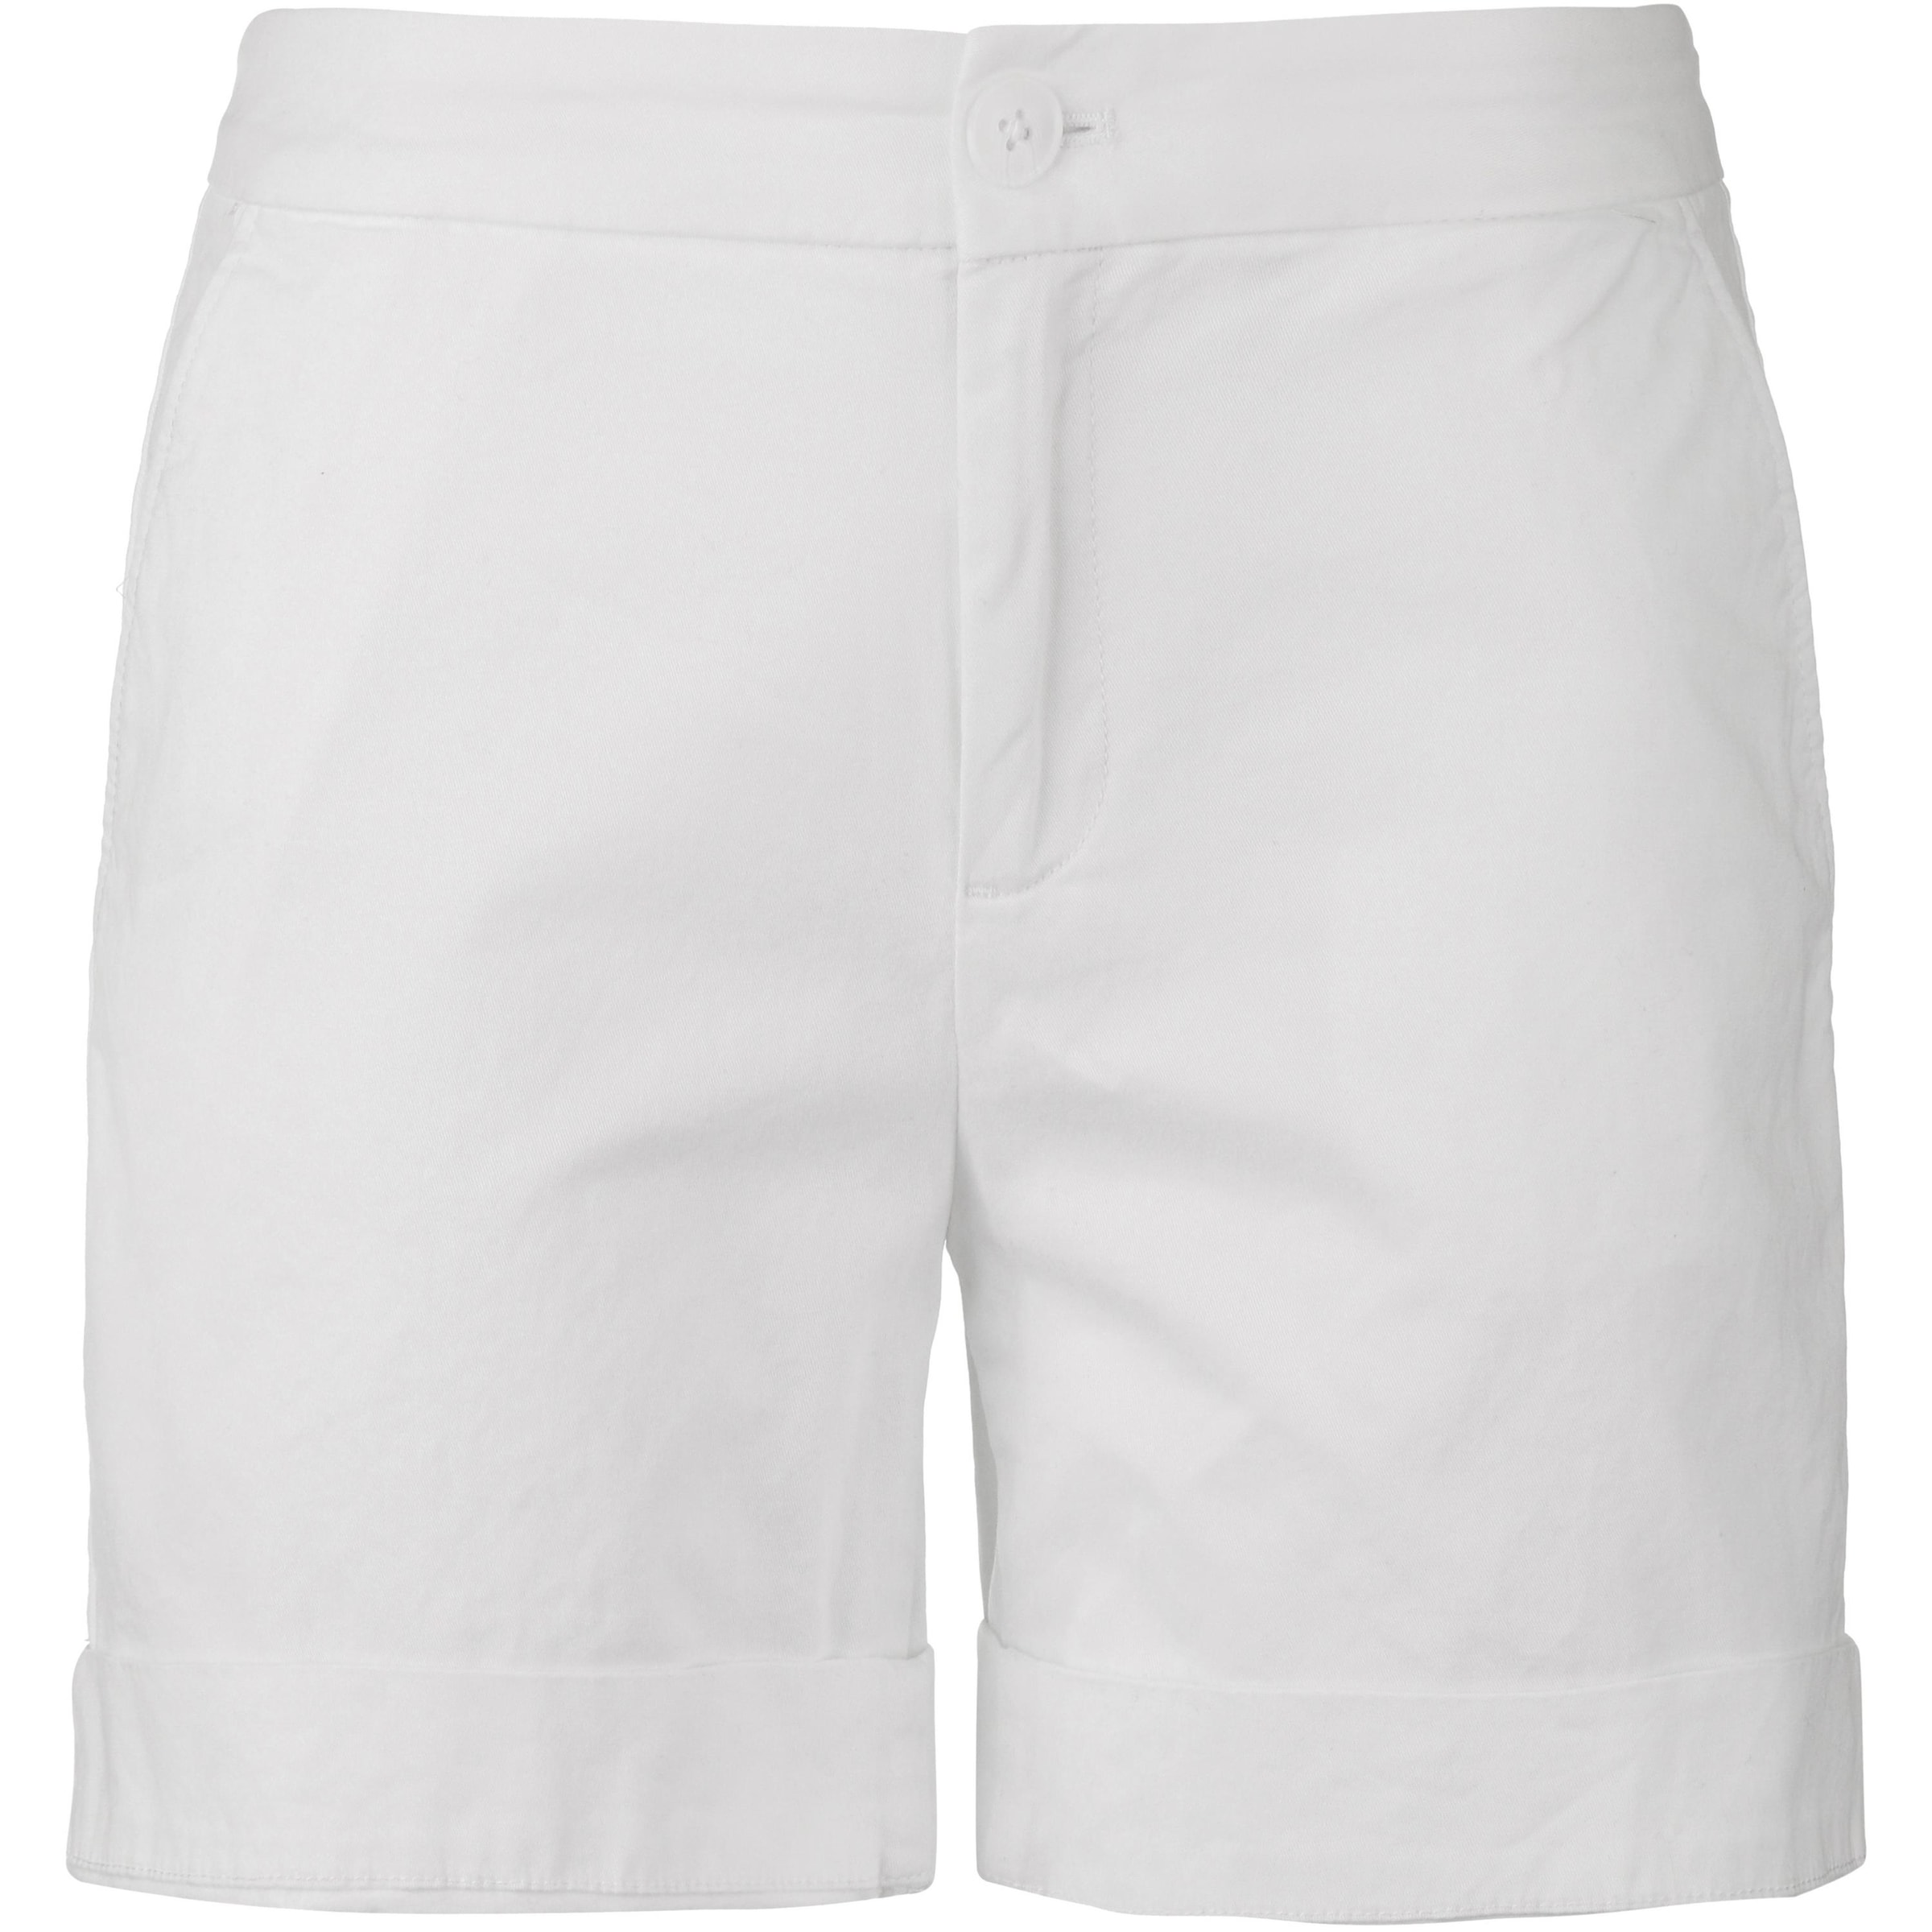 Jeans In In Shorts Jeans Weiß Shorts Tommy Tommy P8w0mnyvNO